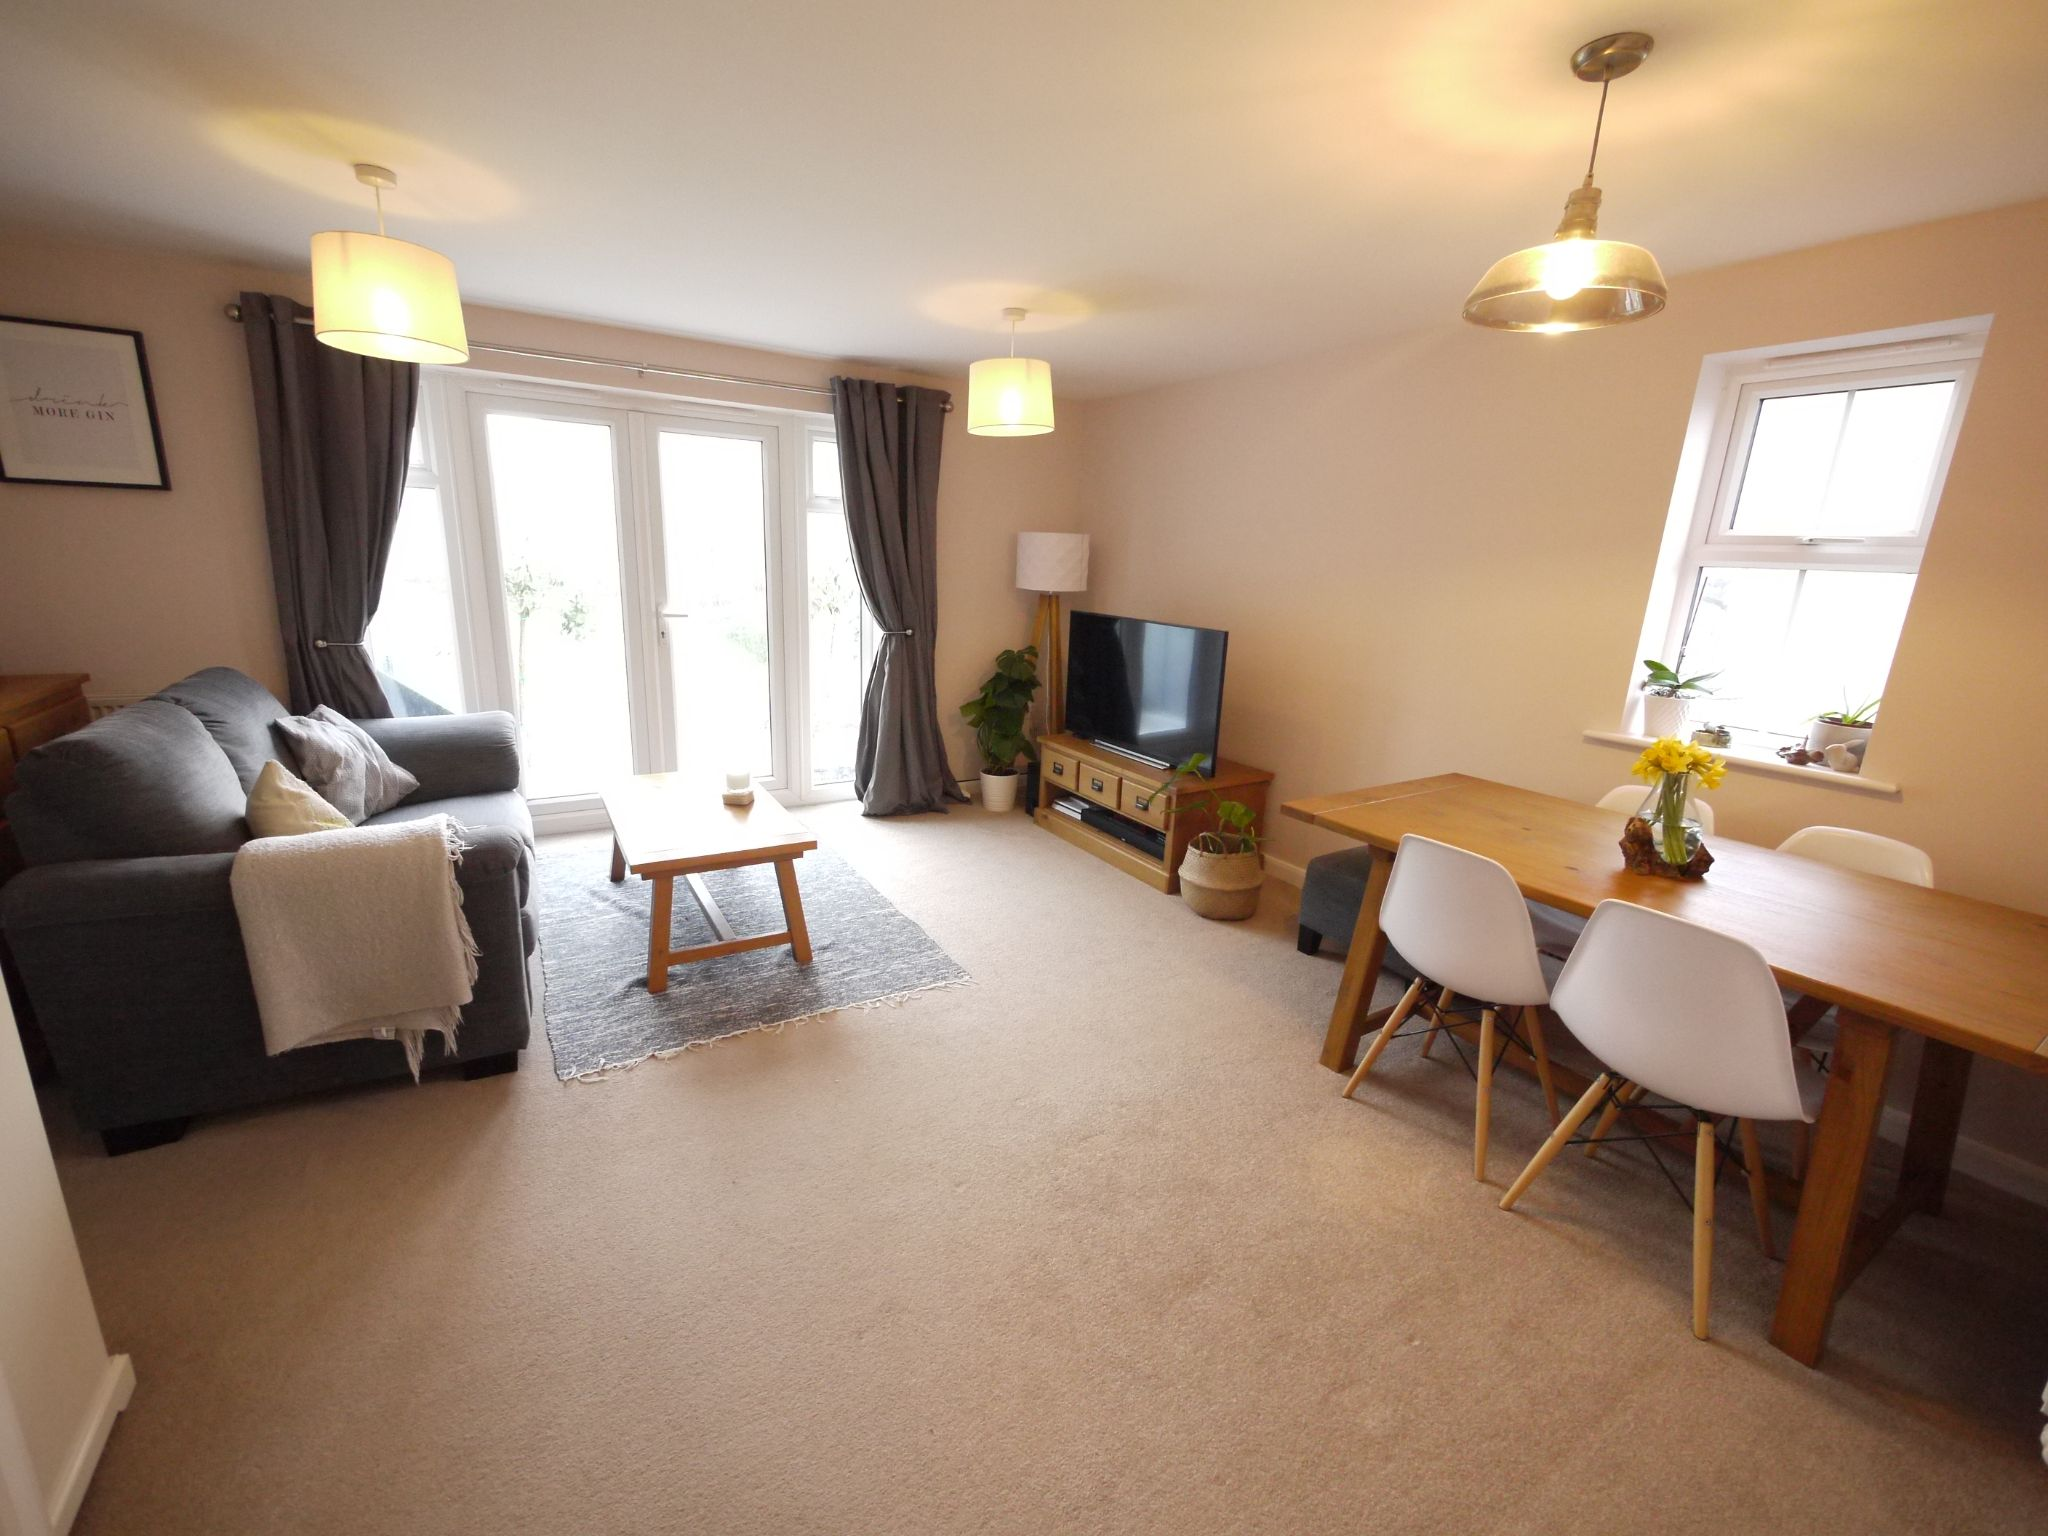 3 bedroom end terraced house SSTC in Cleckheaton - Lounge 1.